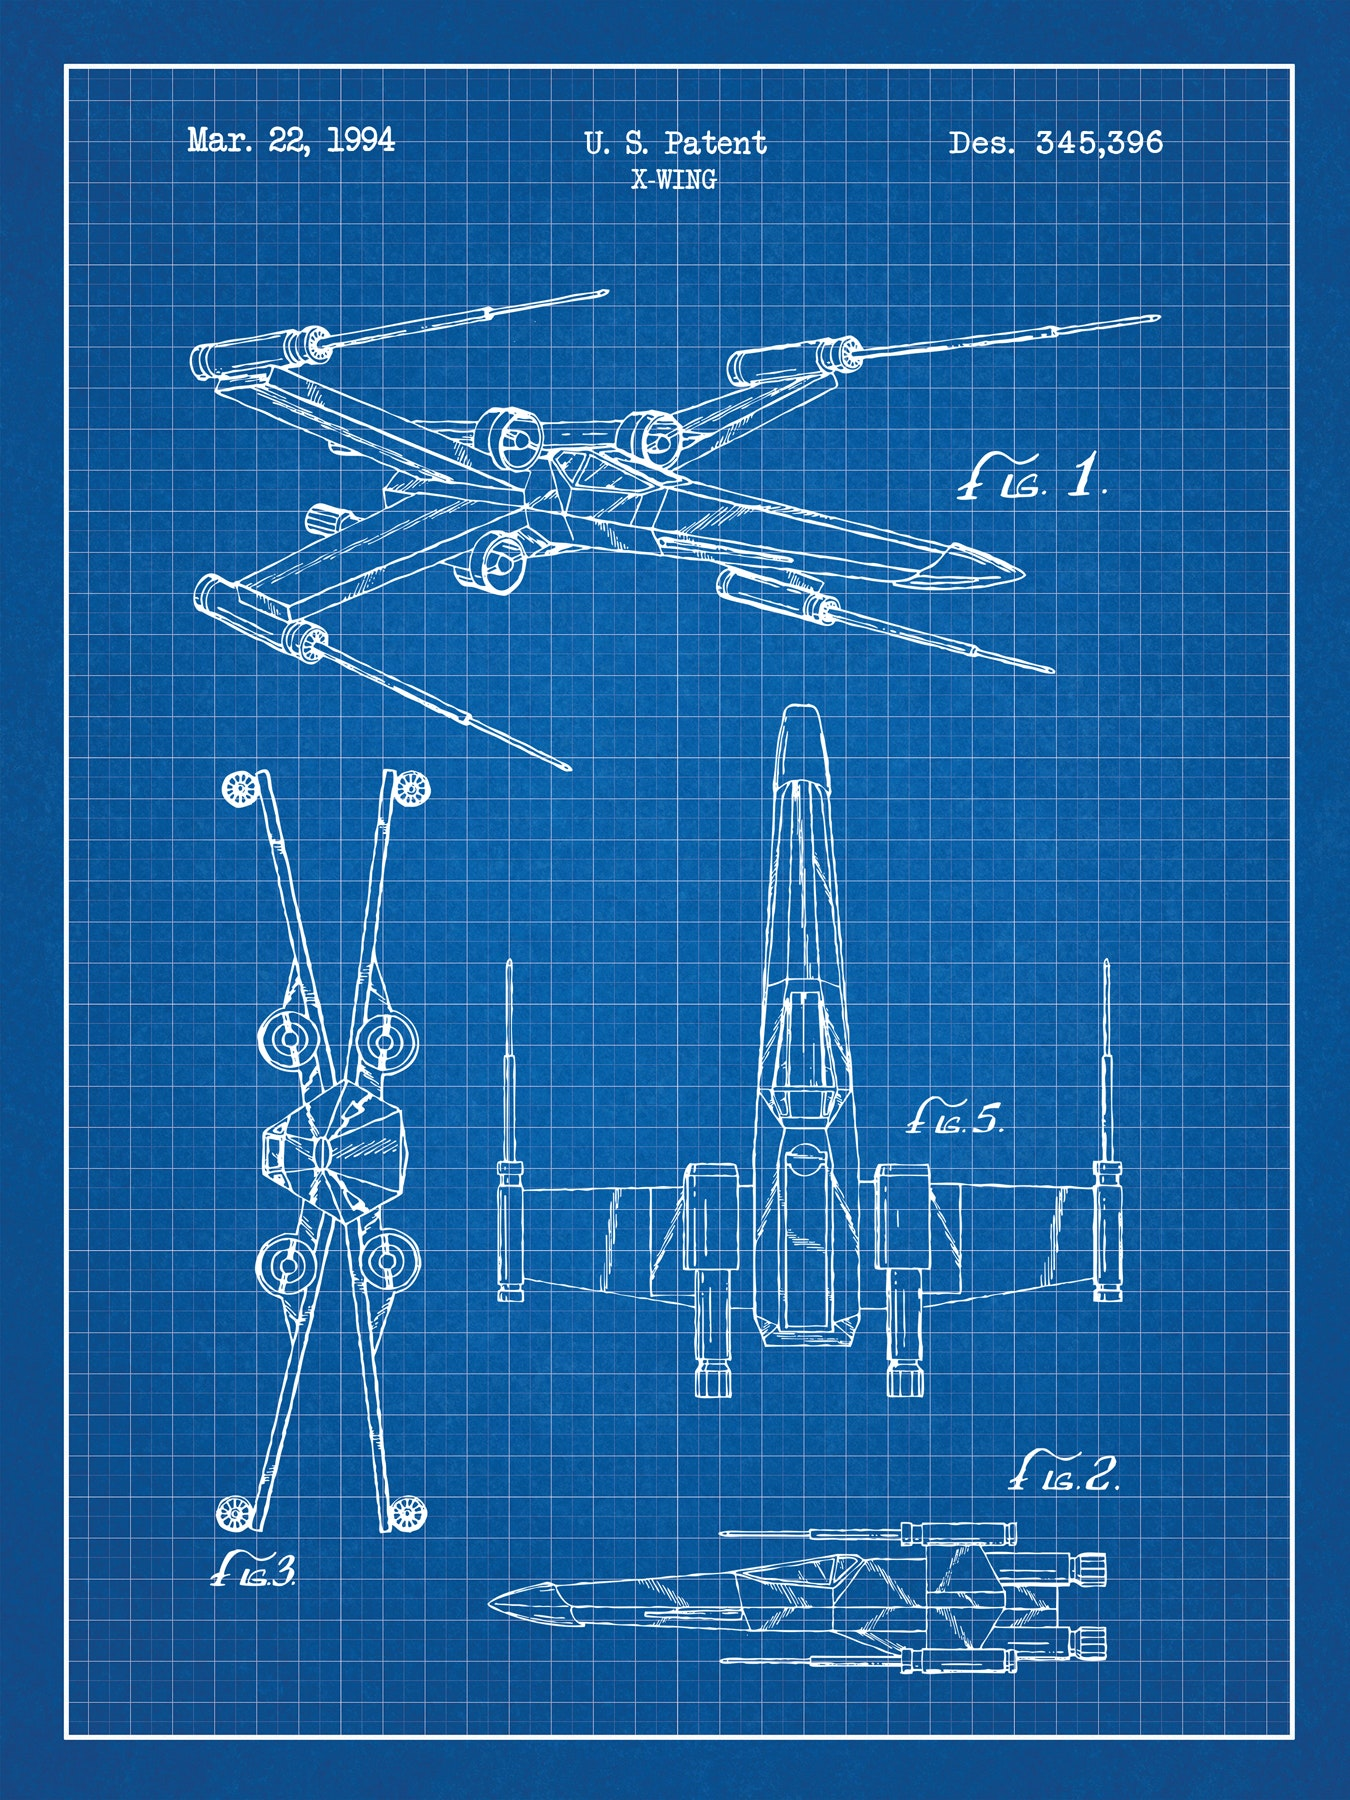 SP-SYFI-X-WING-345,396-Blue-Grid-White-Ink-24-Inches